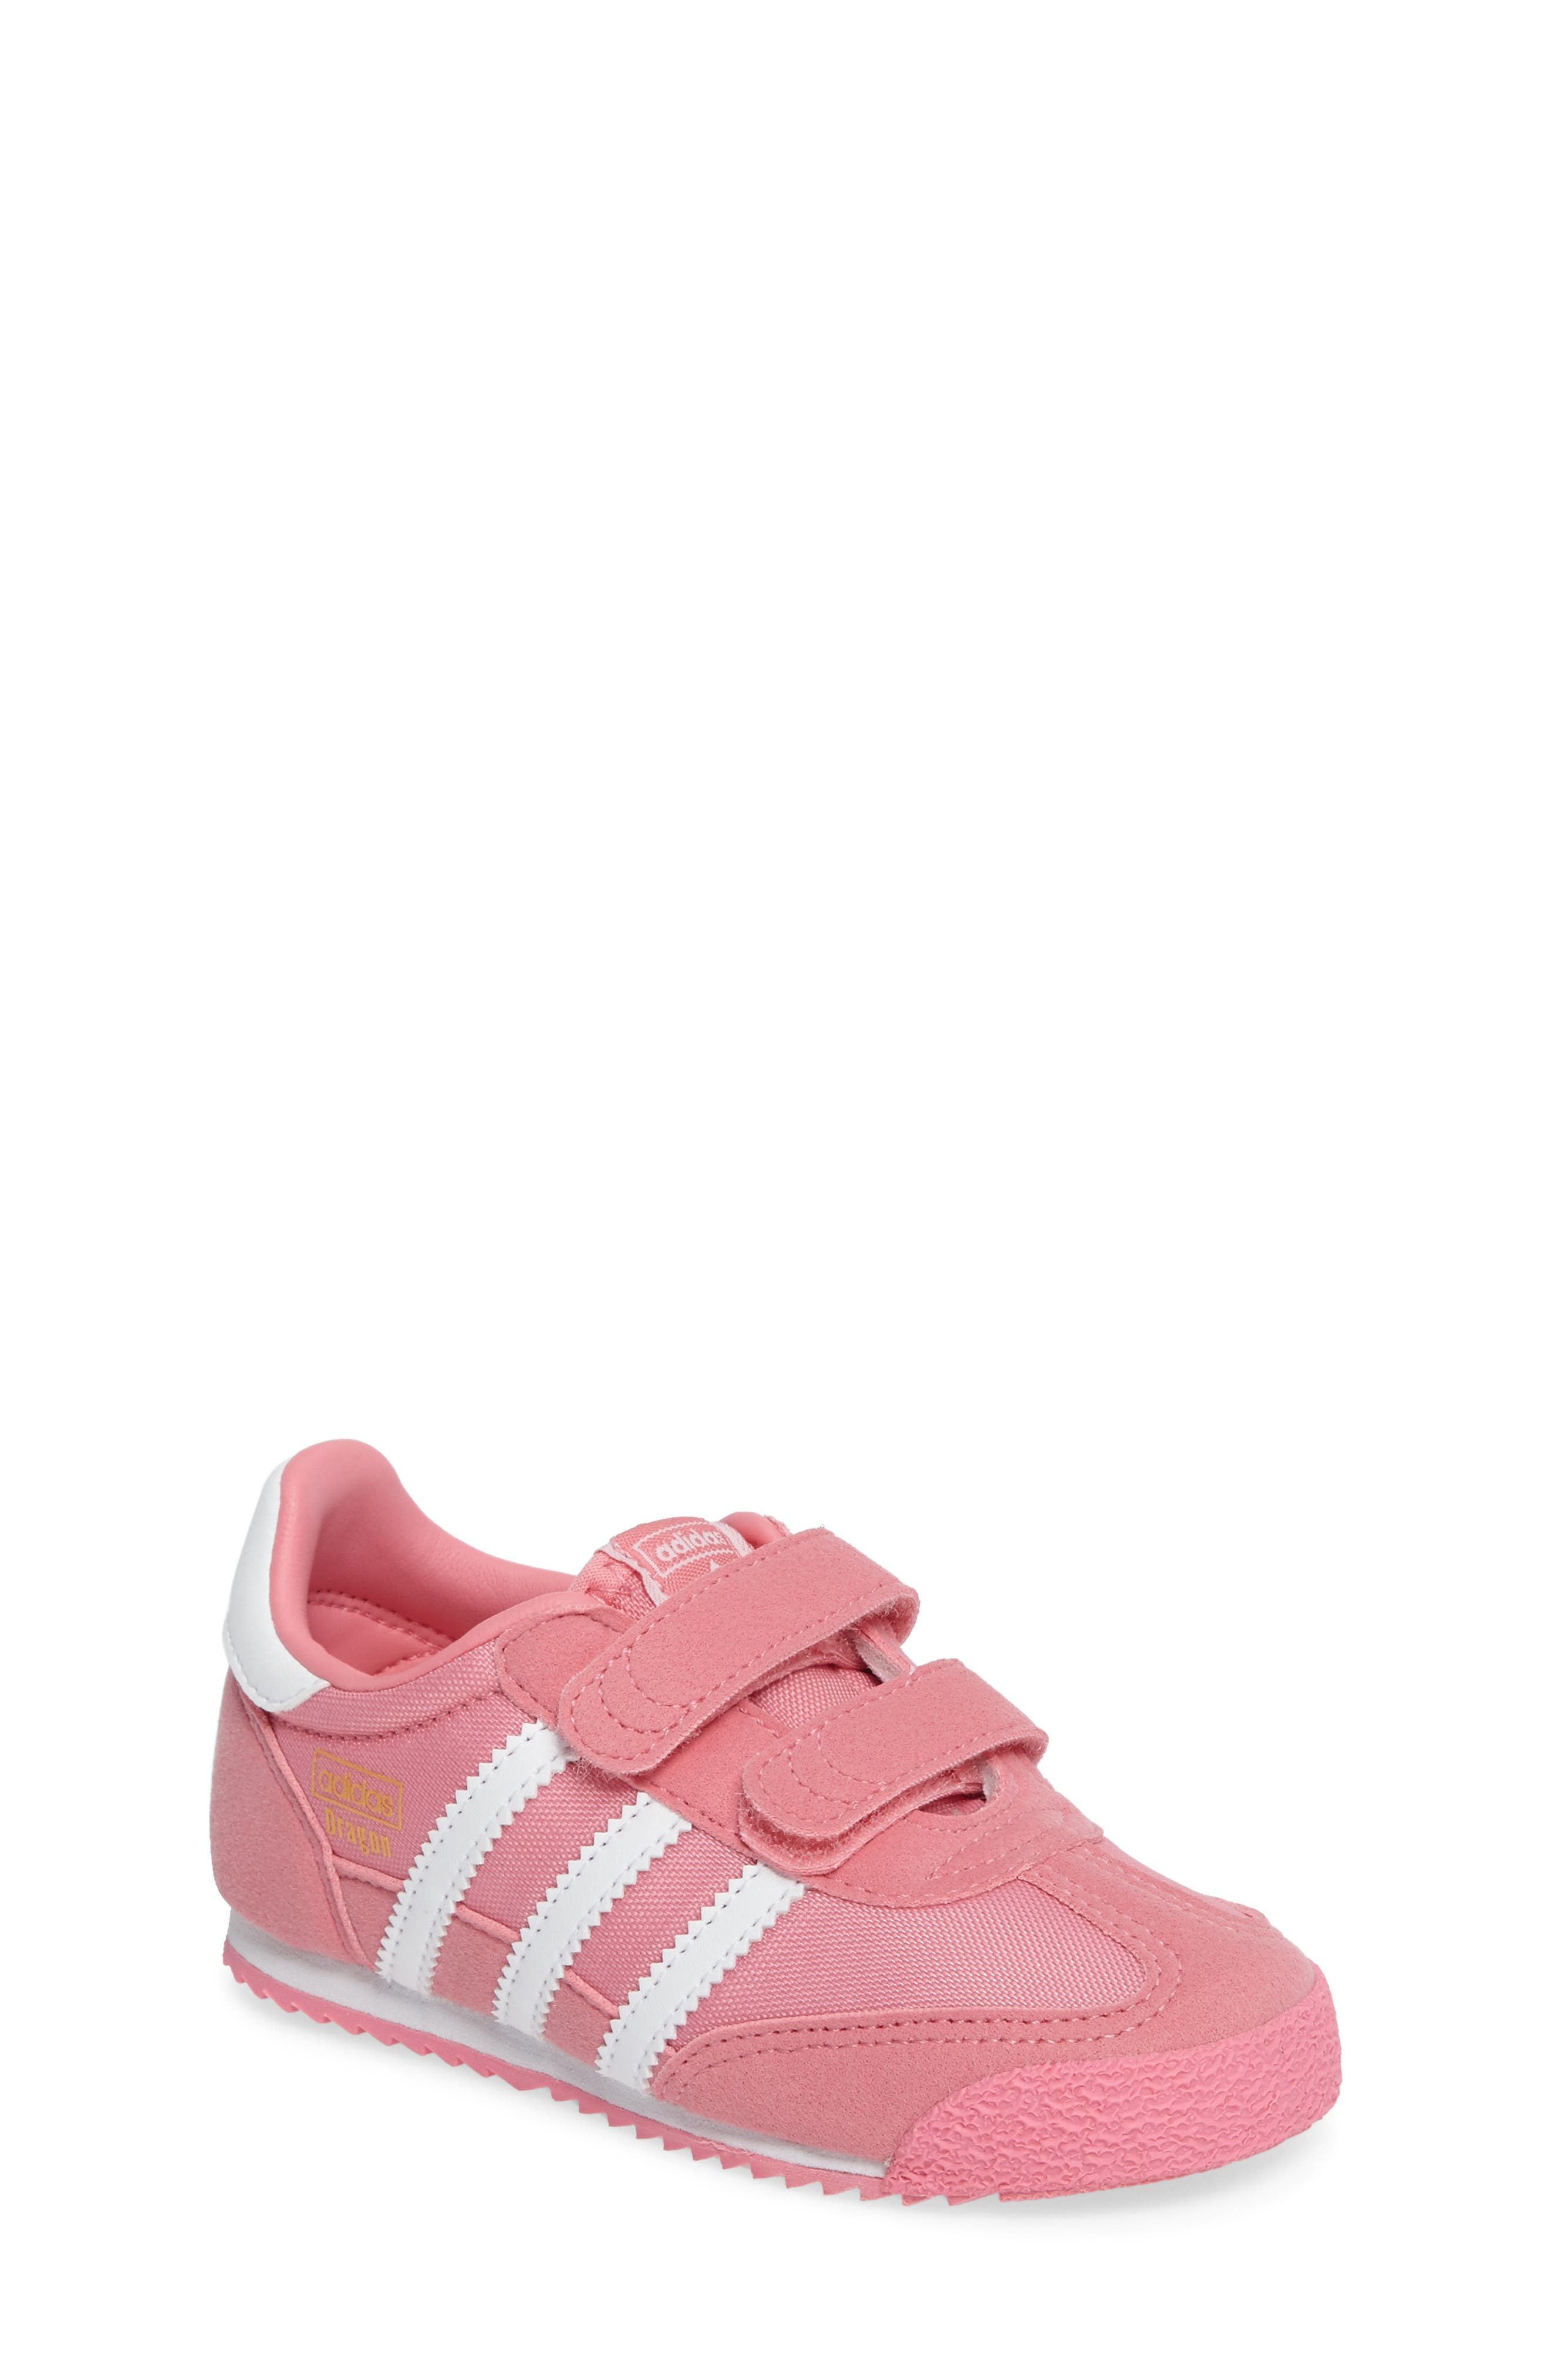 Dragon OG CF Athletic Shoe,                             Main thumbnail 1, color,                             Easy Pink/ White